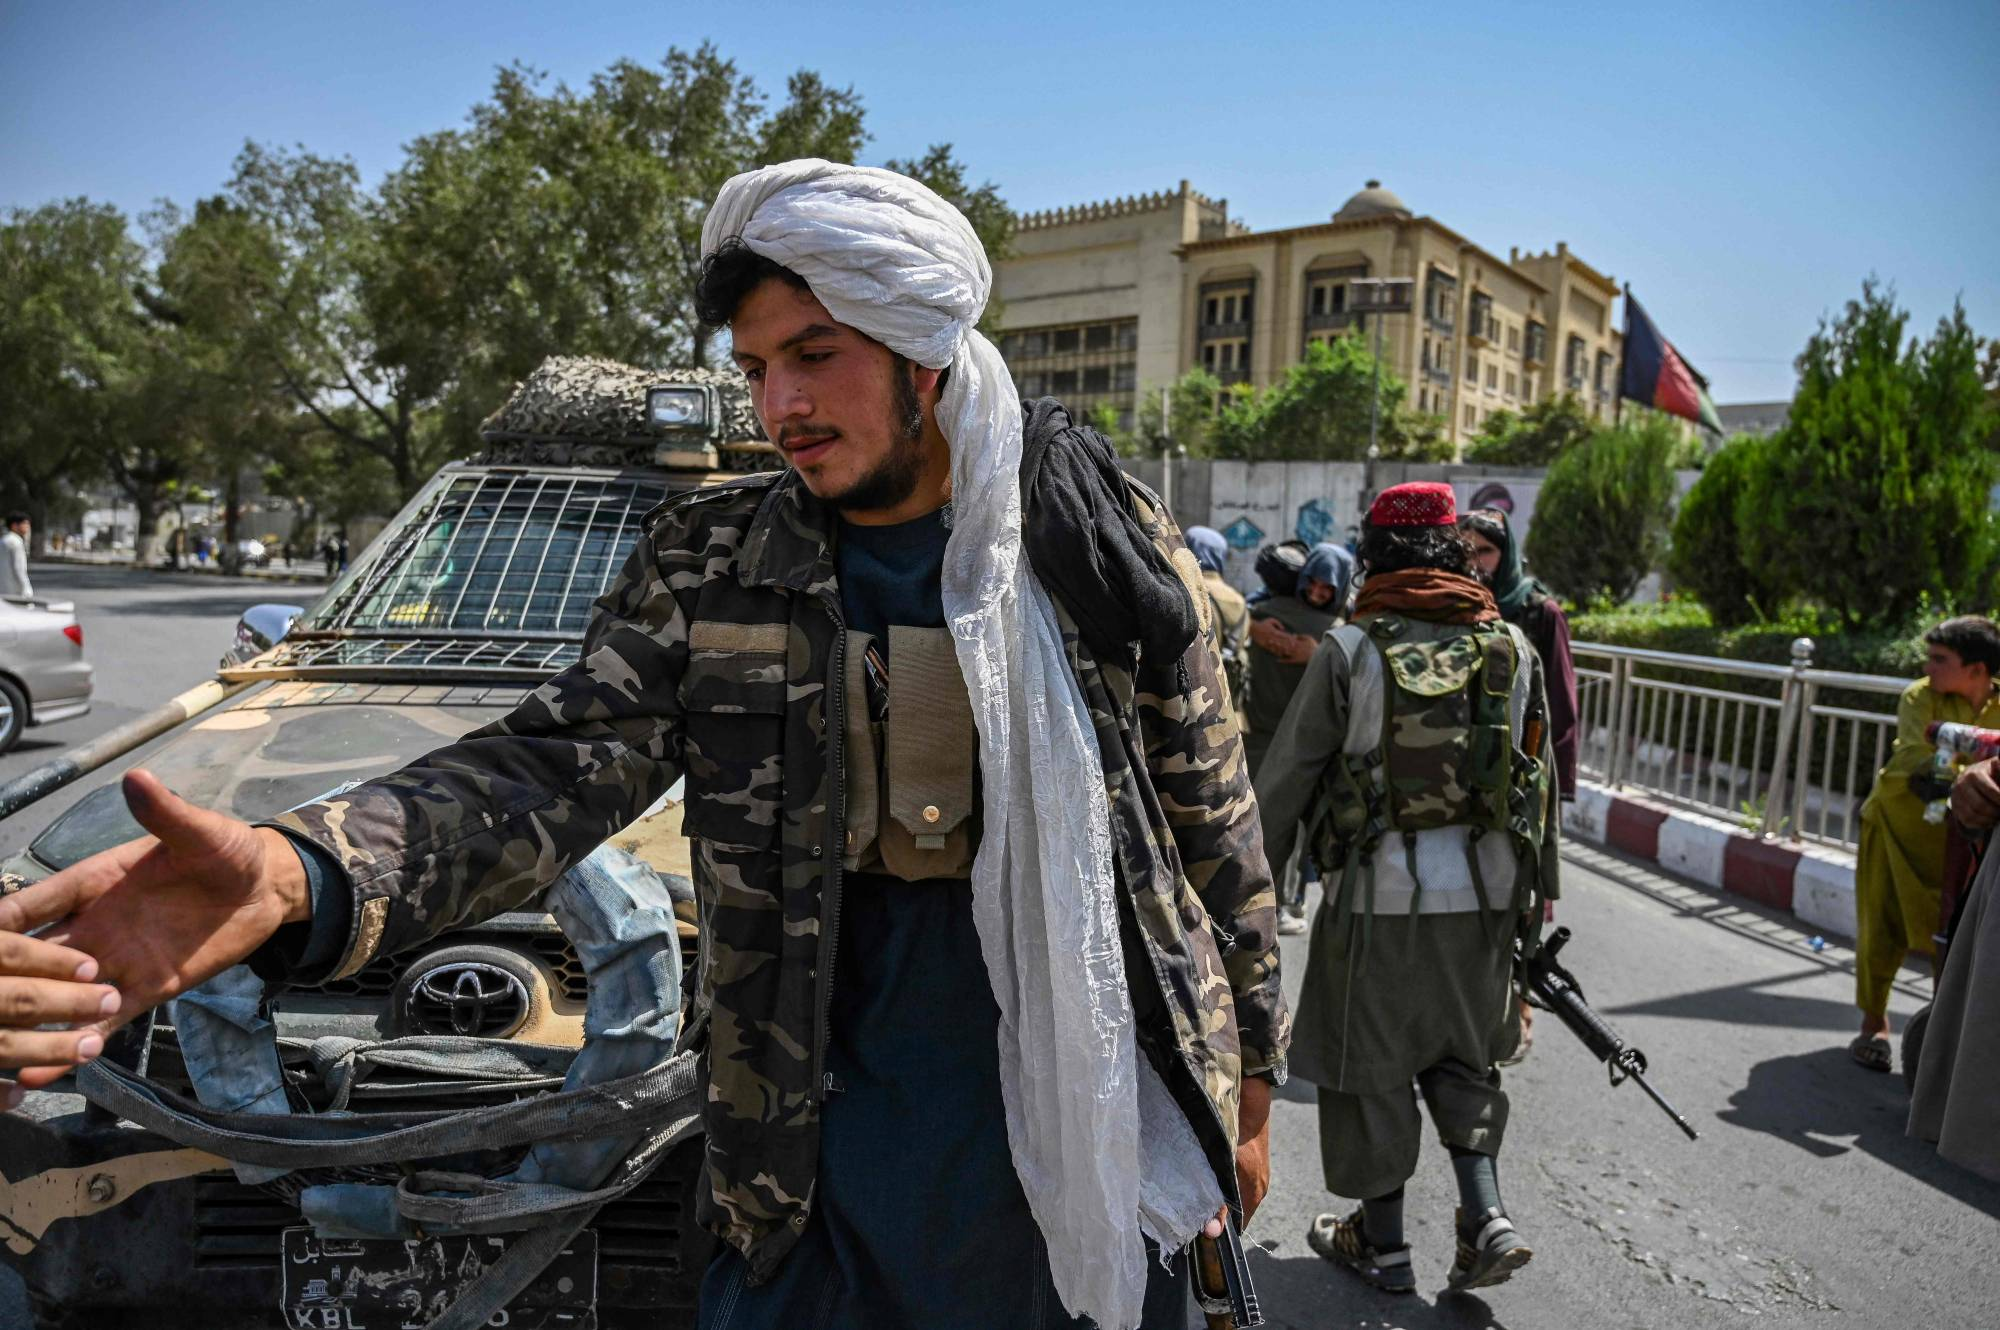 Taliban fighters stand guard along a street at the Kabul's Massoud Square on Monday. | AFP-JIJI